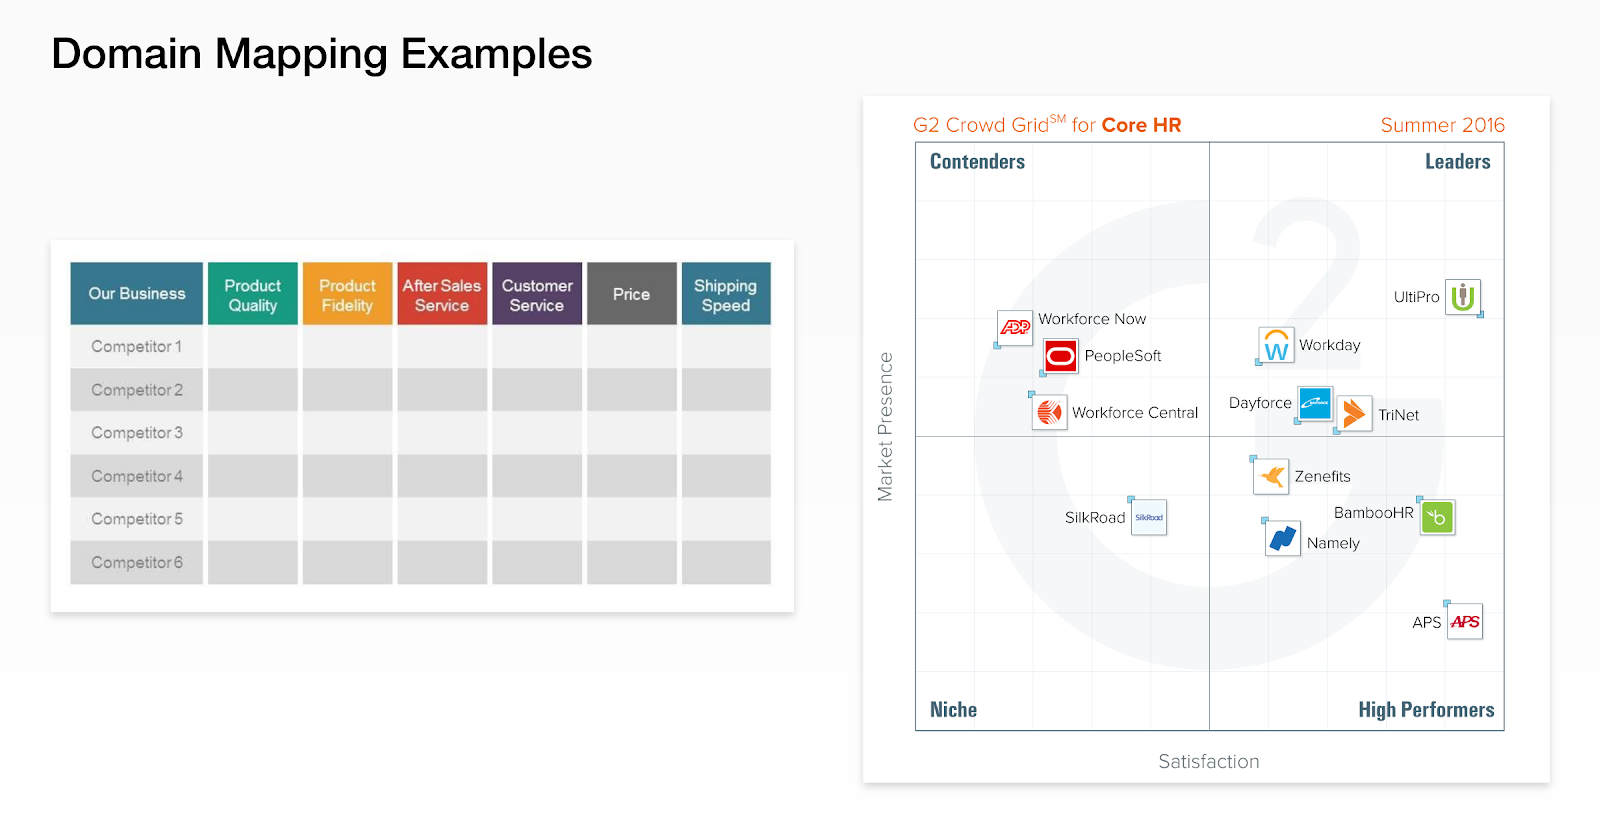 Two examples of domain mapping, including a competitive analysis matrix and graph.